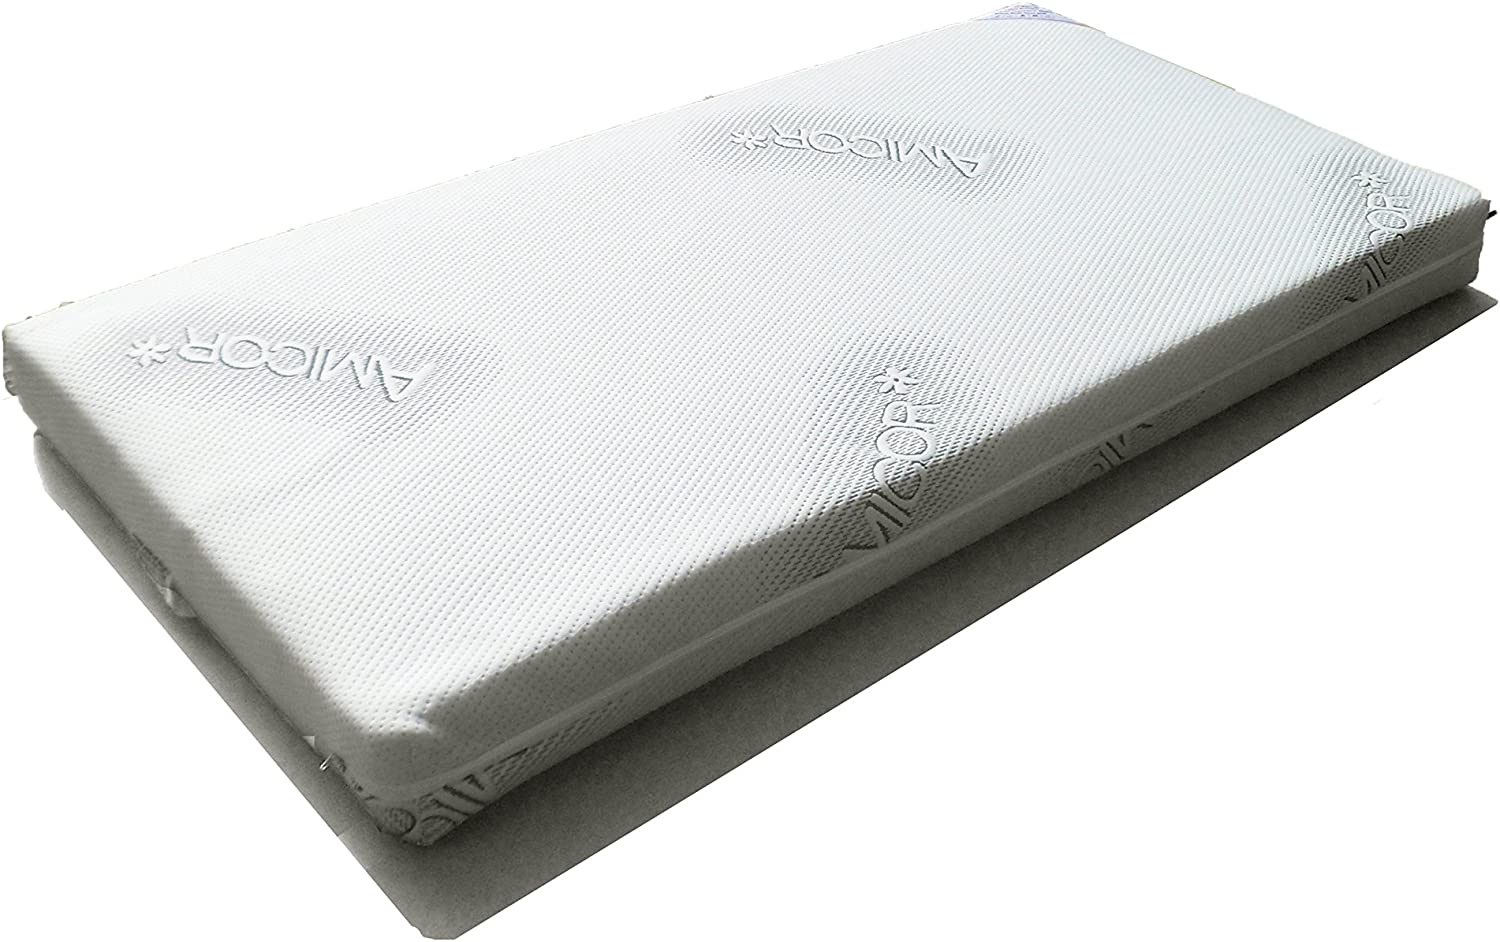 Katy/® Superior Quilted Amicor Luxury Sprung Hypo-allergenic Mattress 132 x 70 x 10cm Thick Will Fit All The New Boori Range Cot Beds Manufactured from FEB 2015